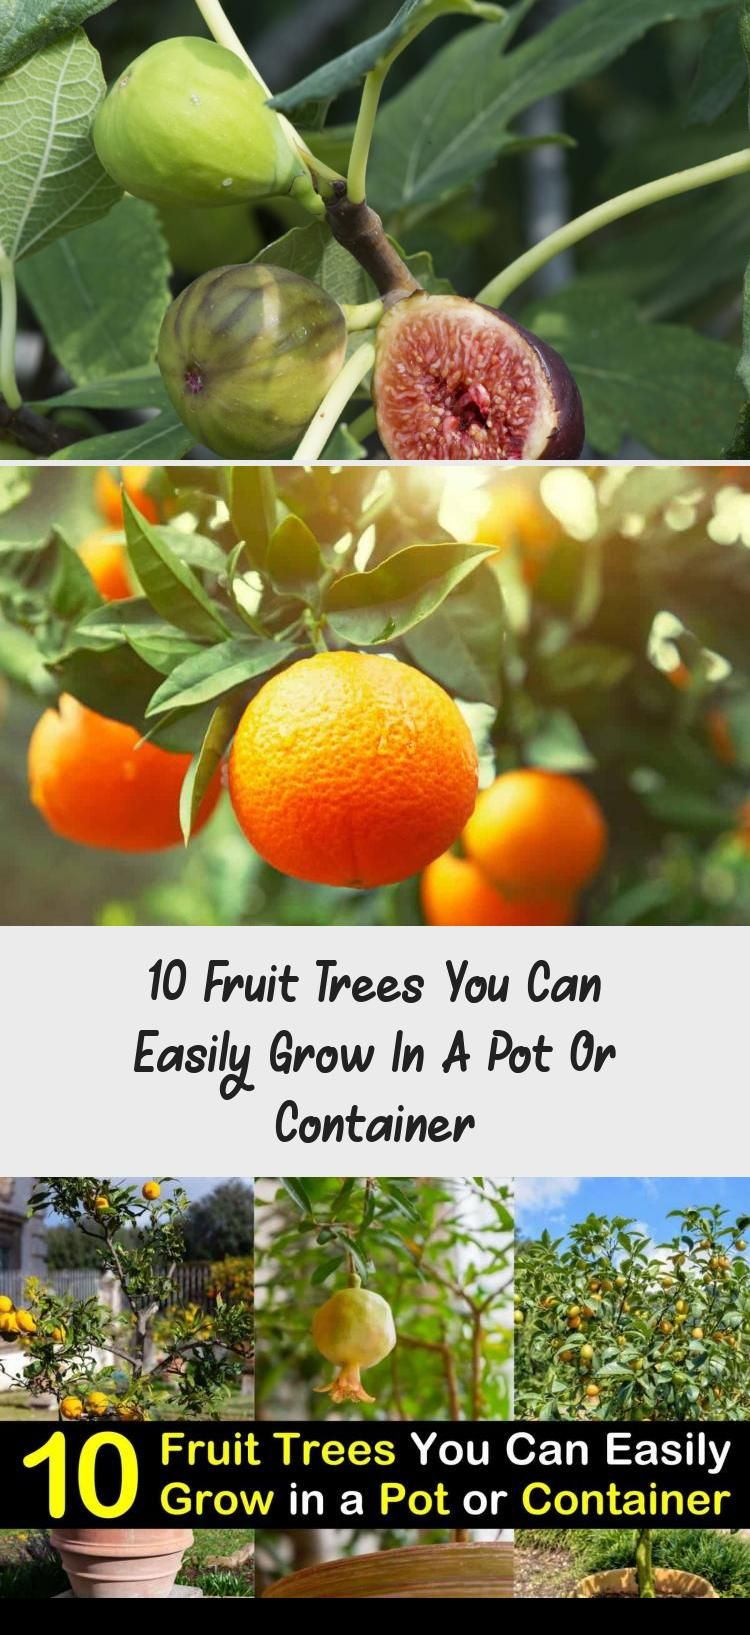 10 Fruit Trees You Can Easily Grow In A Pot Or Container Containergardeningcourtyard Containe Fruit Trees Container Gardening Shade Fruit Trees In Containers